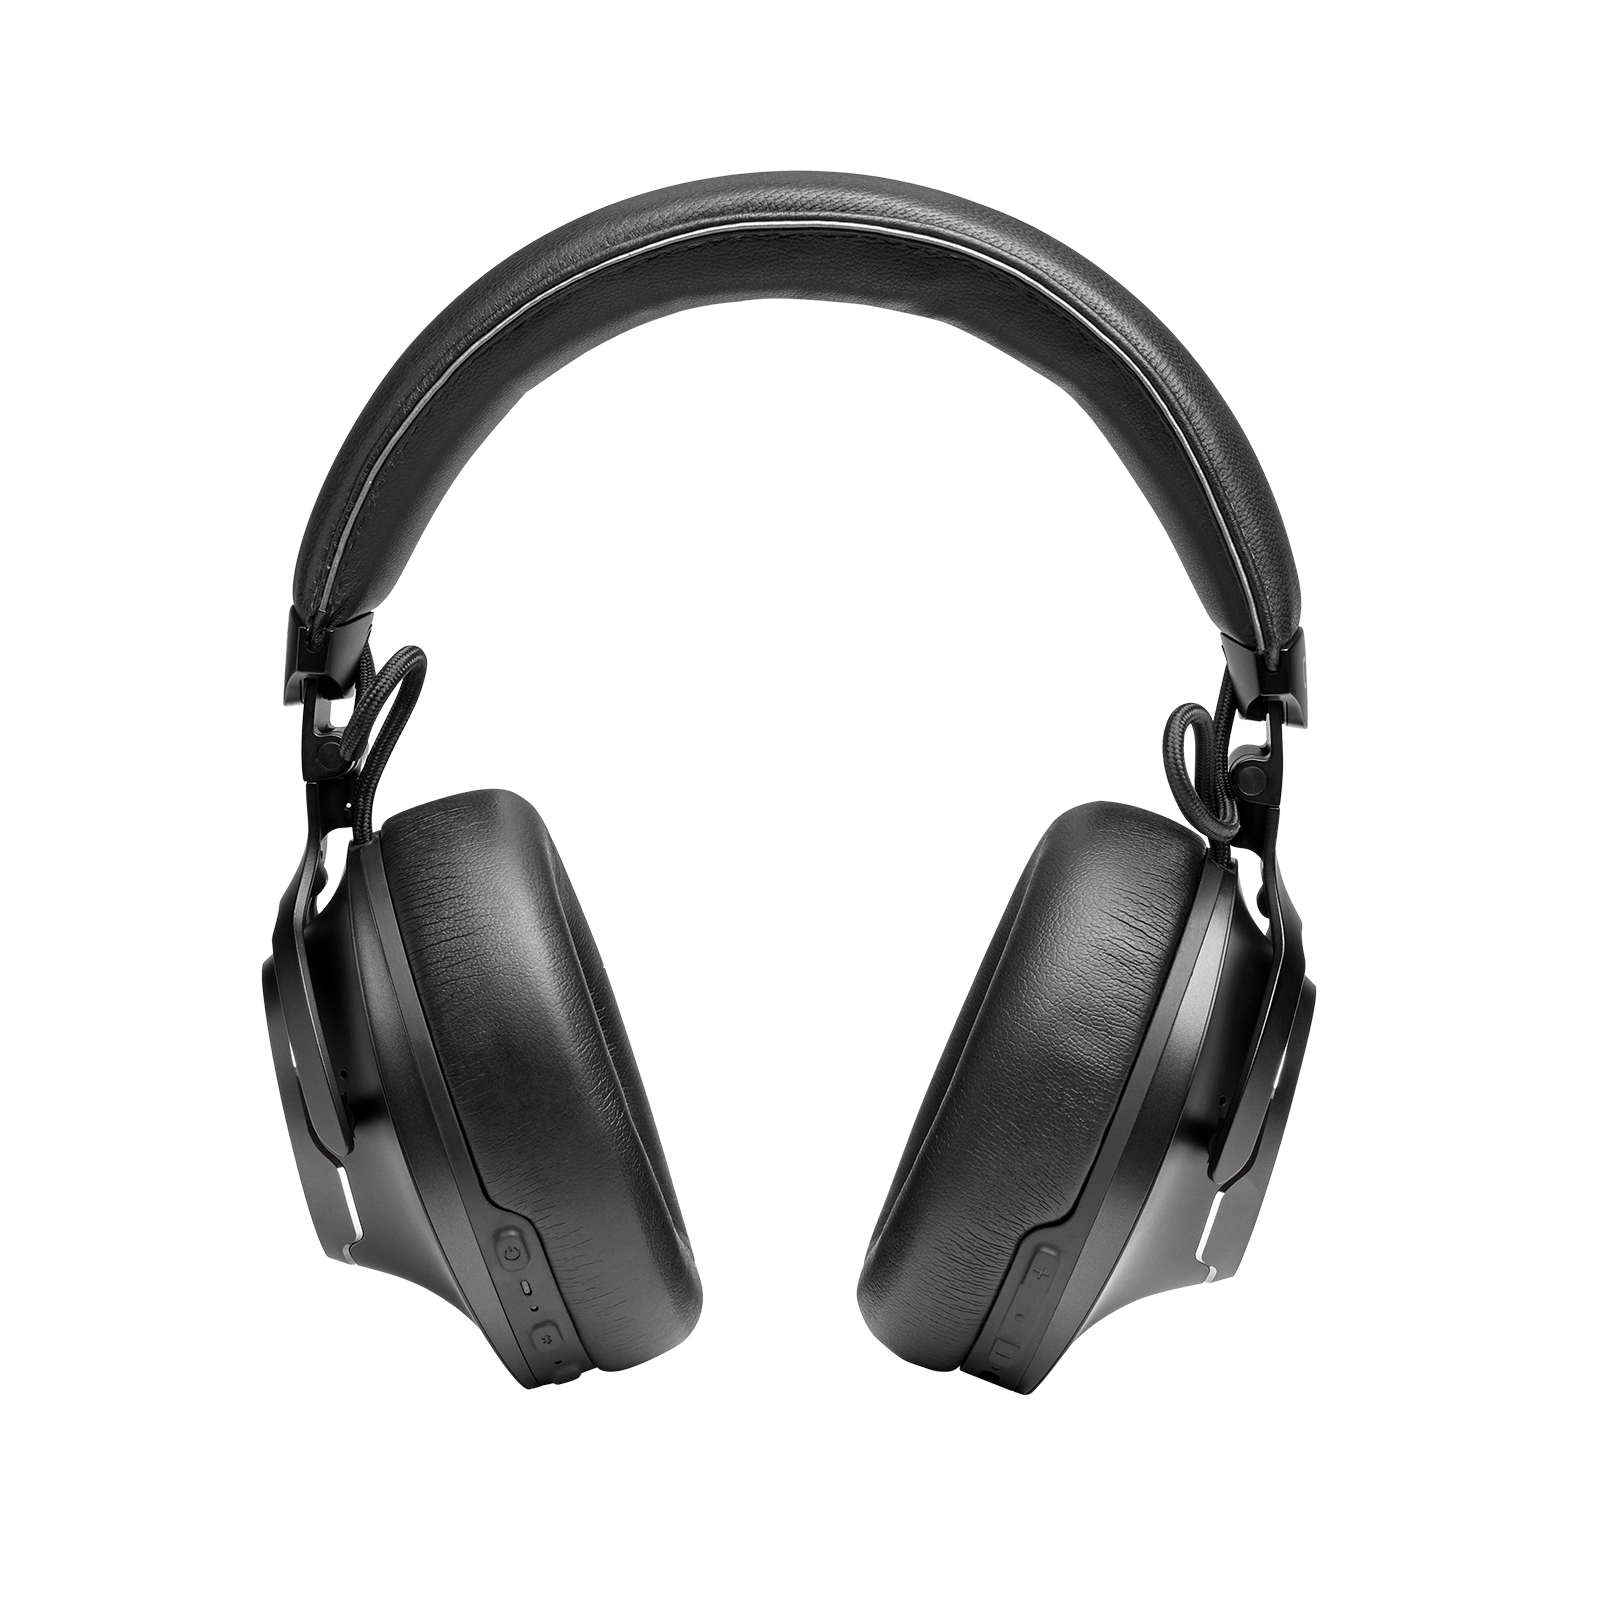 JBL CLUB ONE - Black - Wireless, over-ear, True Adaptive Noise Cancelling headphones inspired by pro musicians - Back